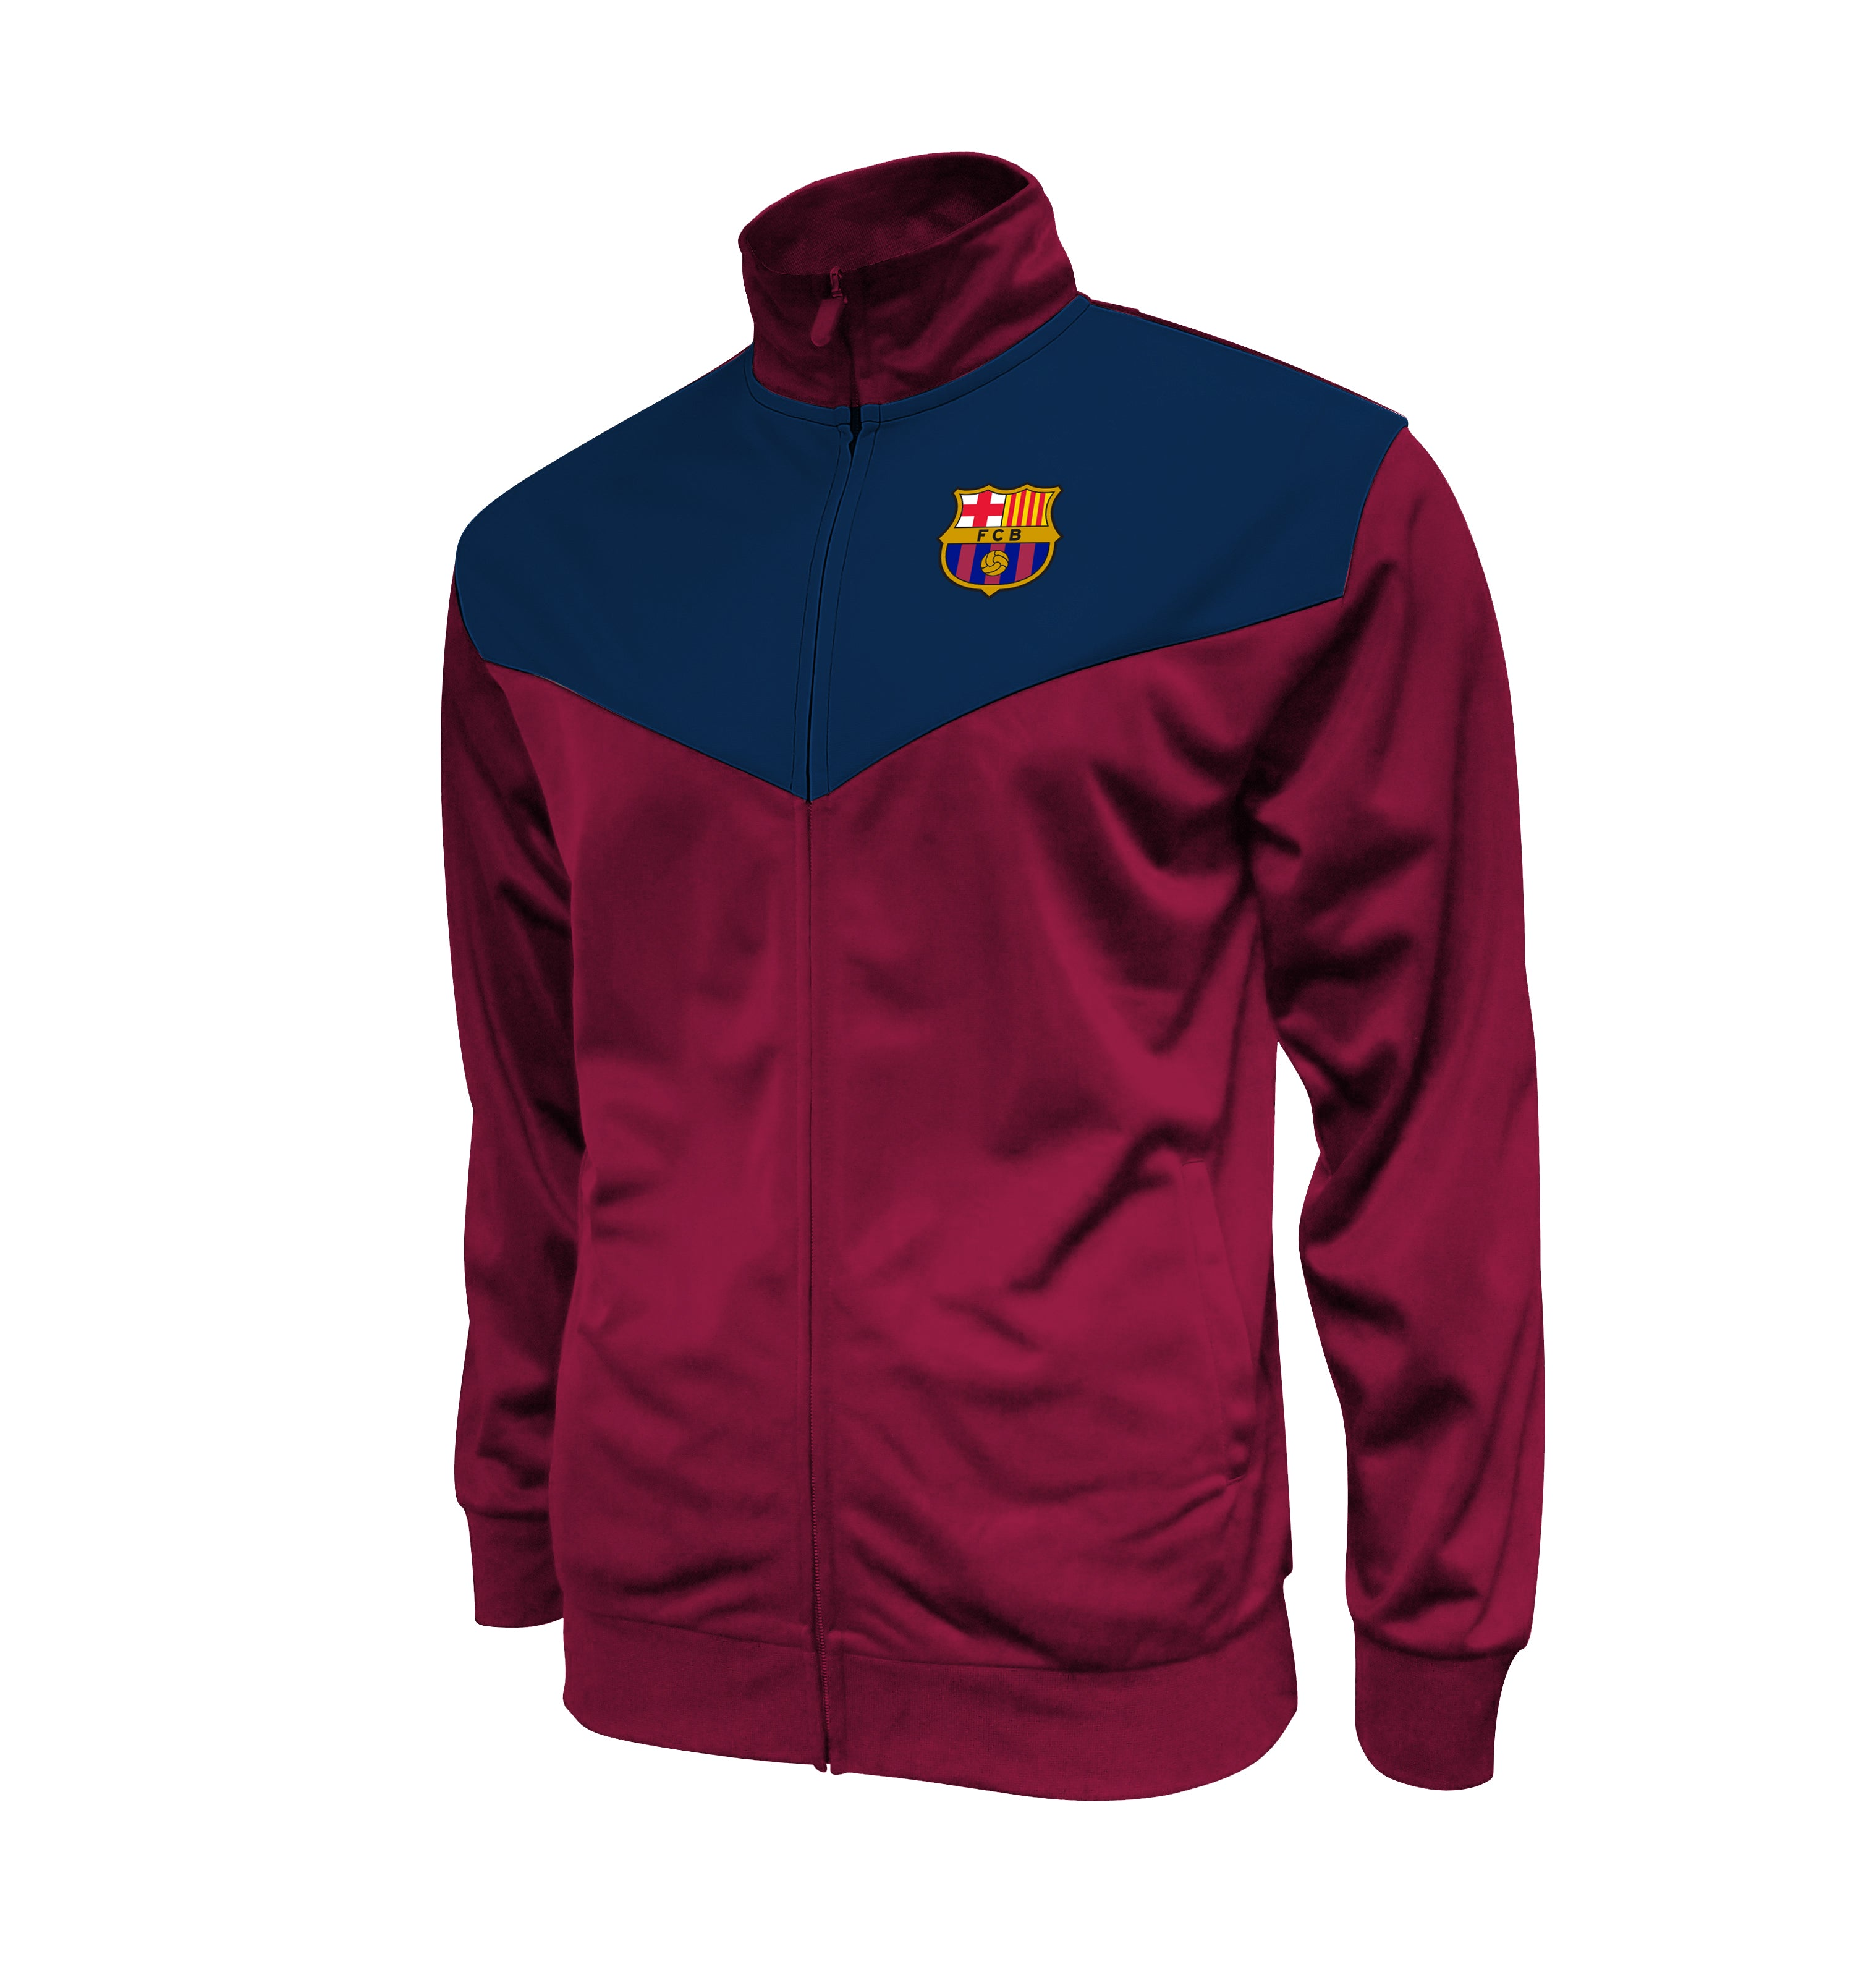 FC Barcelona Adult Full-Zip Track Jacket - Red by Icon Sports